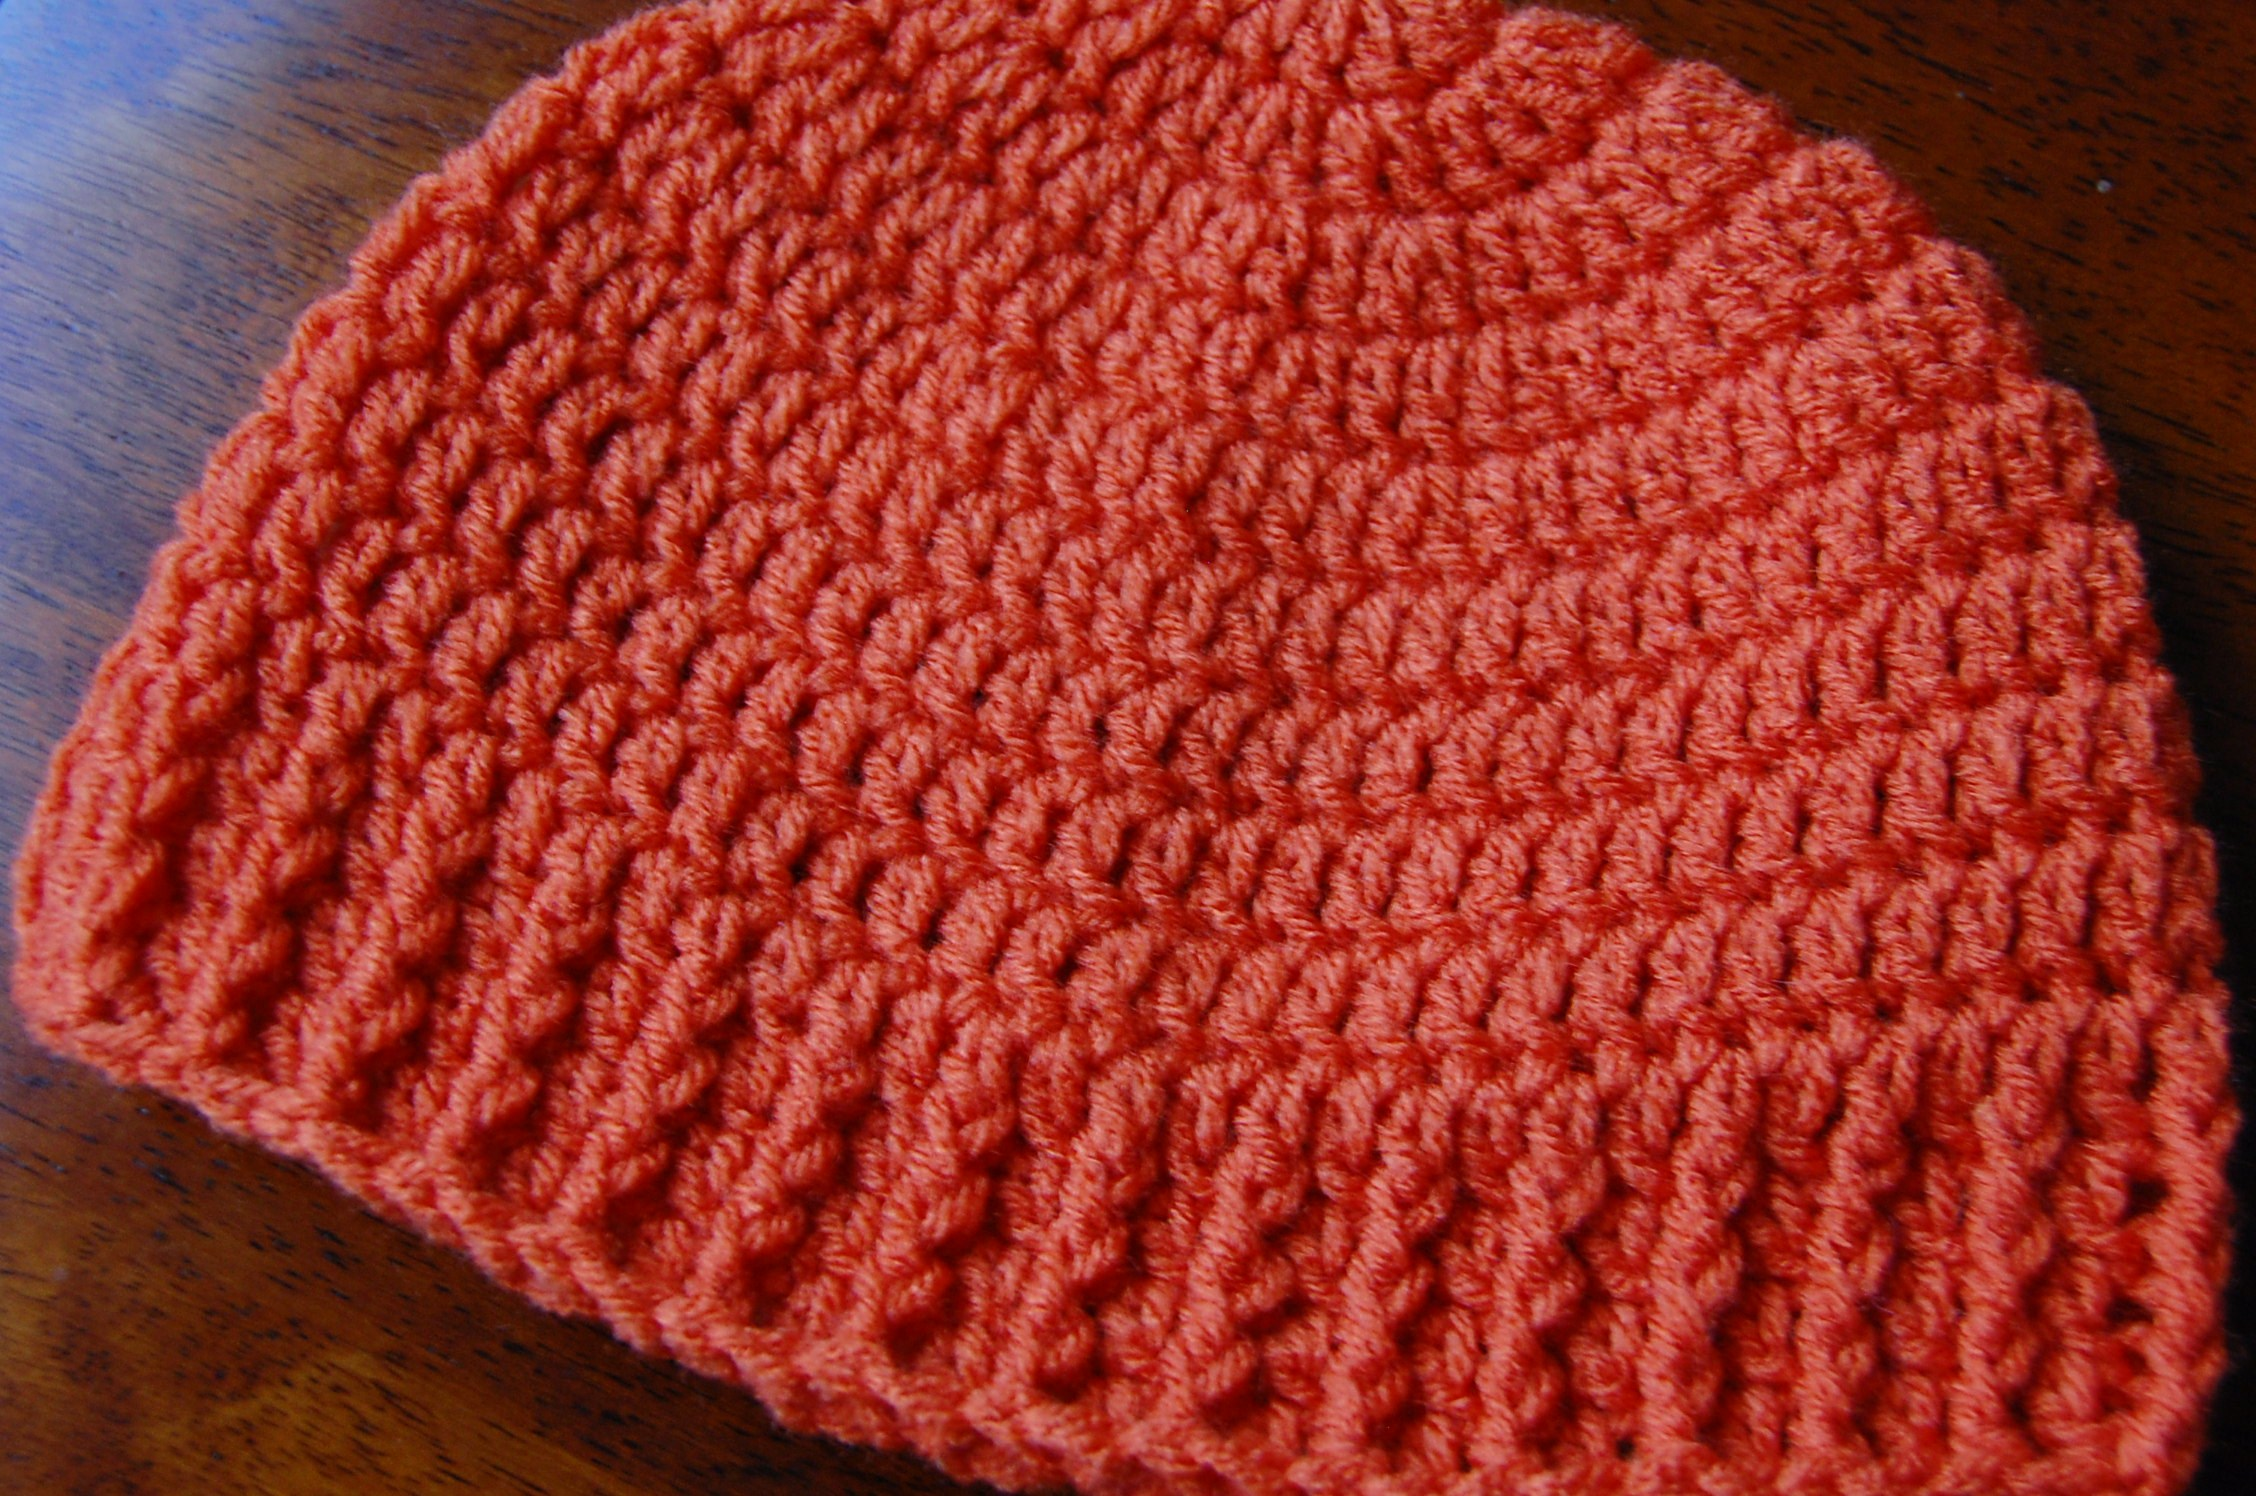 Crochet Patterns Free For Hats : Free Crochet Mens Hat Pattern JJCrochet